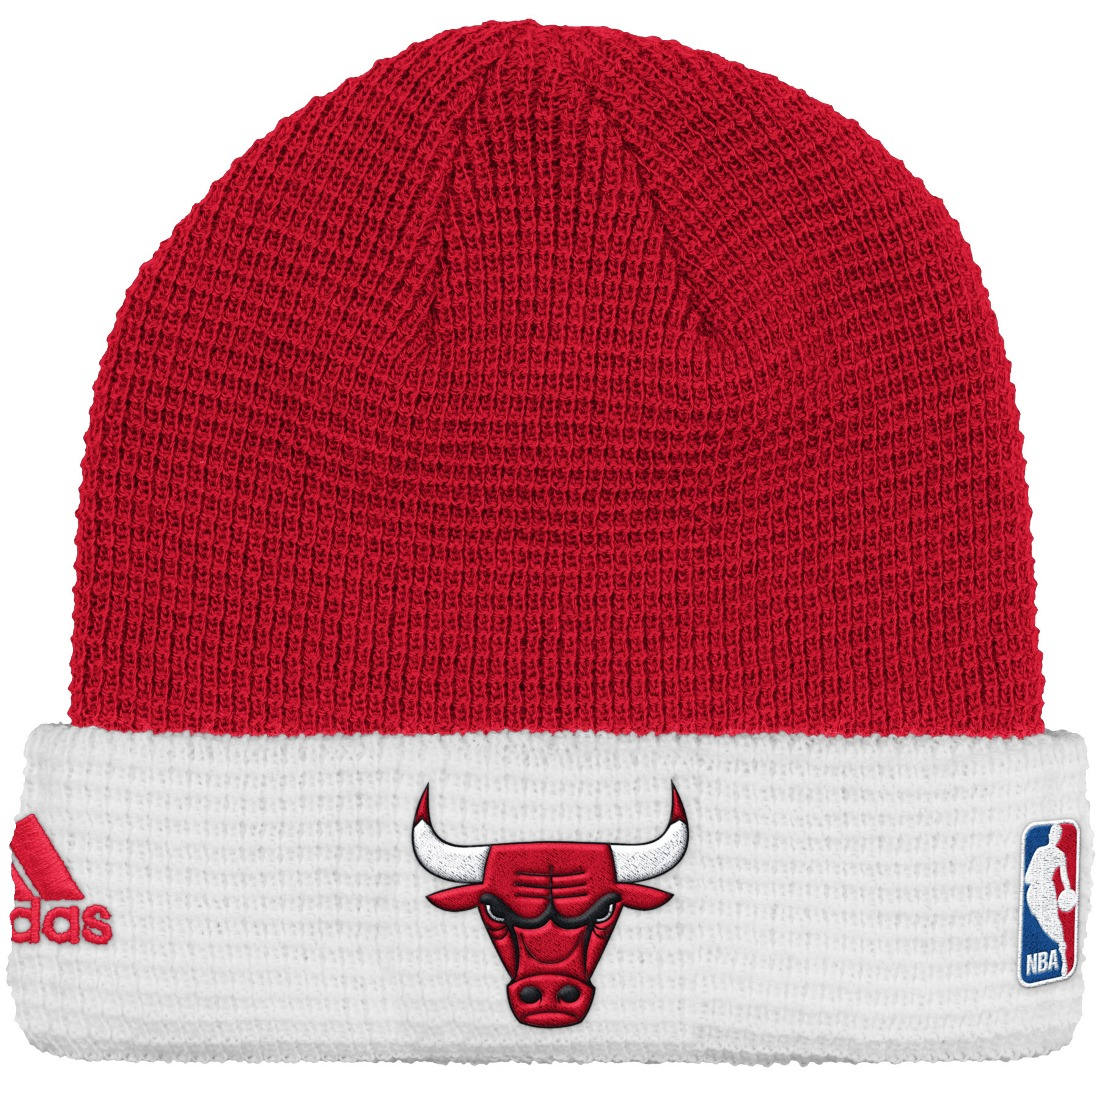 Chicago Bulls Adidas NBA 2015 Authentic Team Cuffed Knit Hat by Adidas